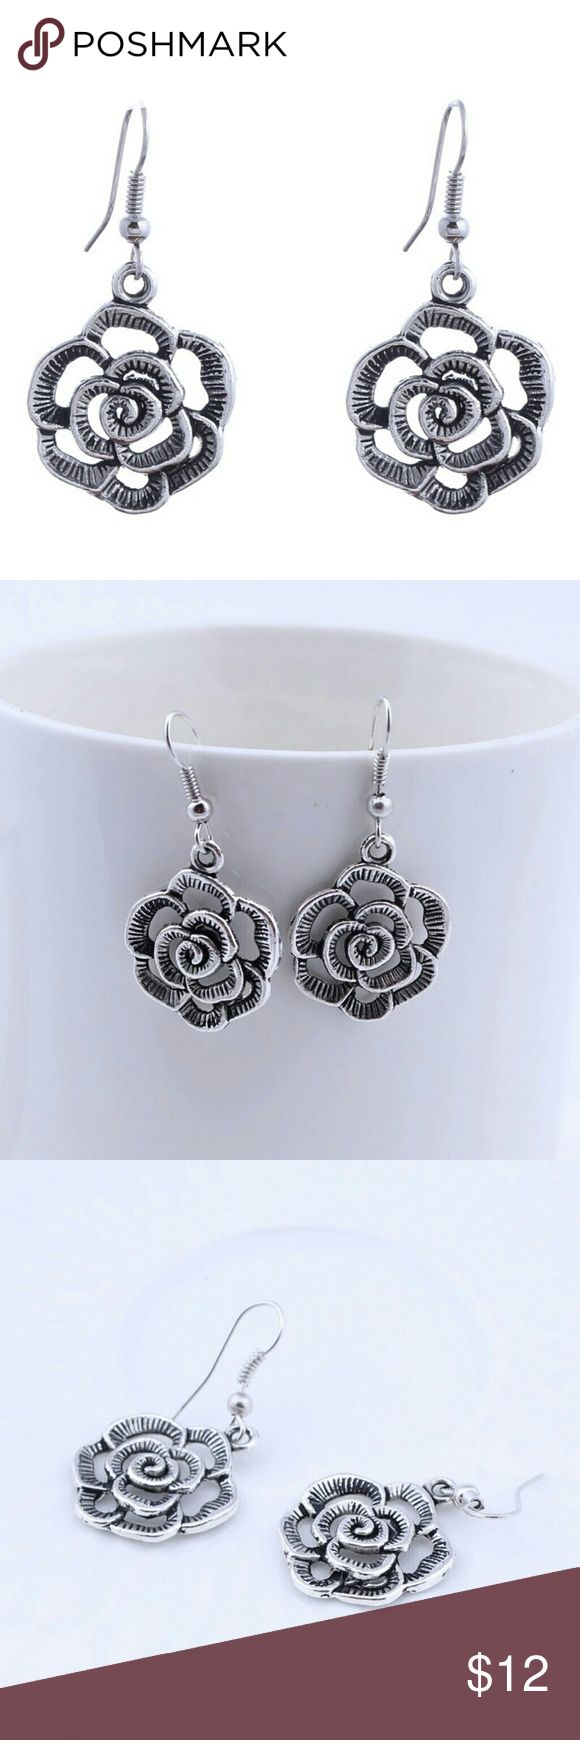 Vintage Rose earrings Brand new with tags. Fall inlove with these bohemian style rose earrings. Simple light and super cute! High quality costume jewelry. Antique silver ated. Gift box included with this purchase. Offers Welcome!! Also buy one get one half off and buy 2 get one free on bundles!! Costume Jewelry Jewelry Earrings